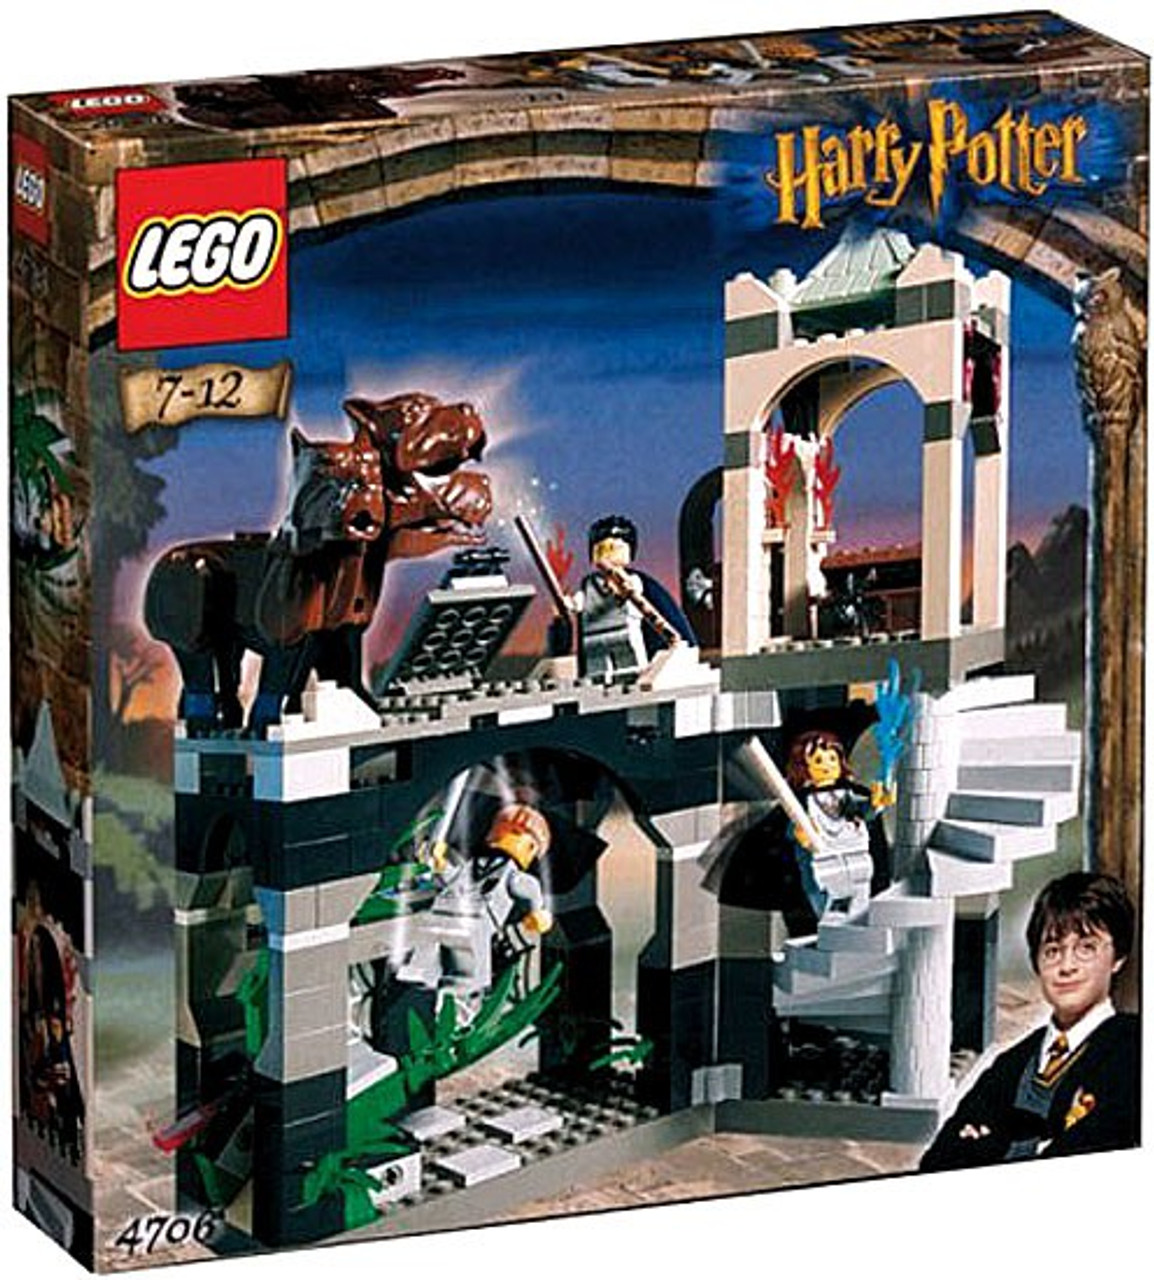 LEGO Harry Potter Series 1 Sorcerer's Stone Forbidden Corridor Set #4706